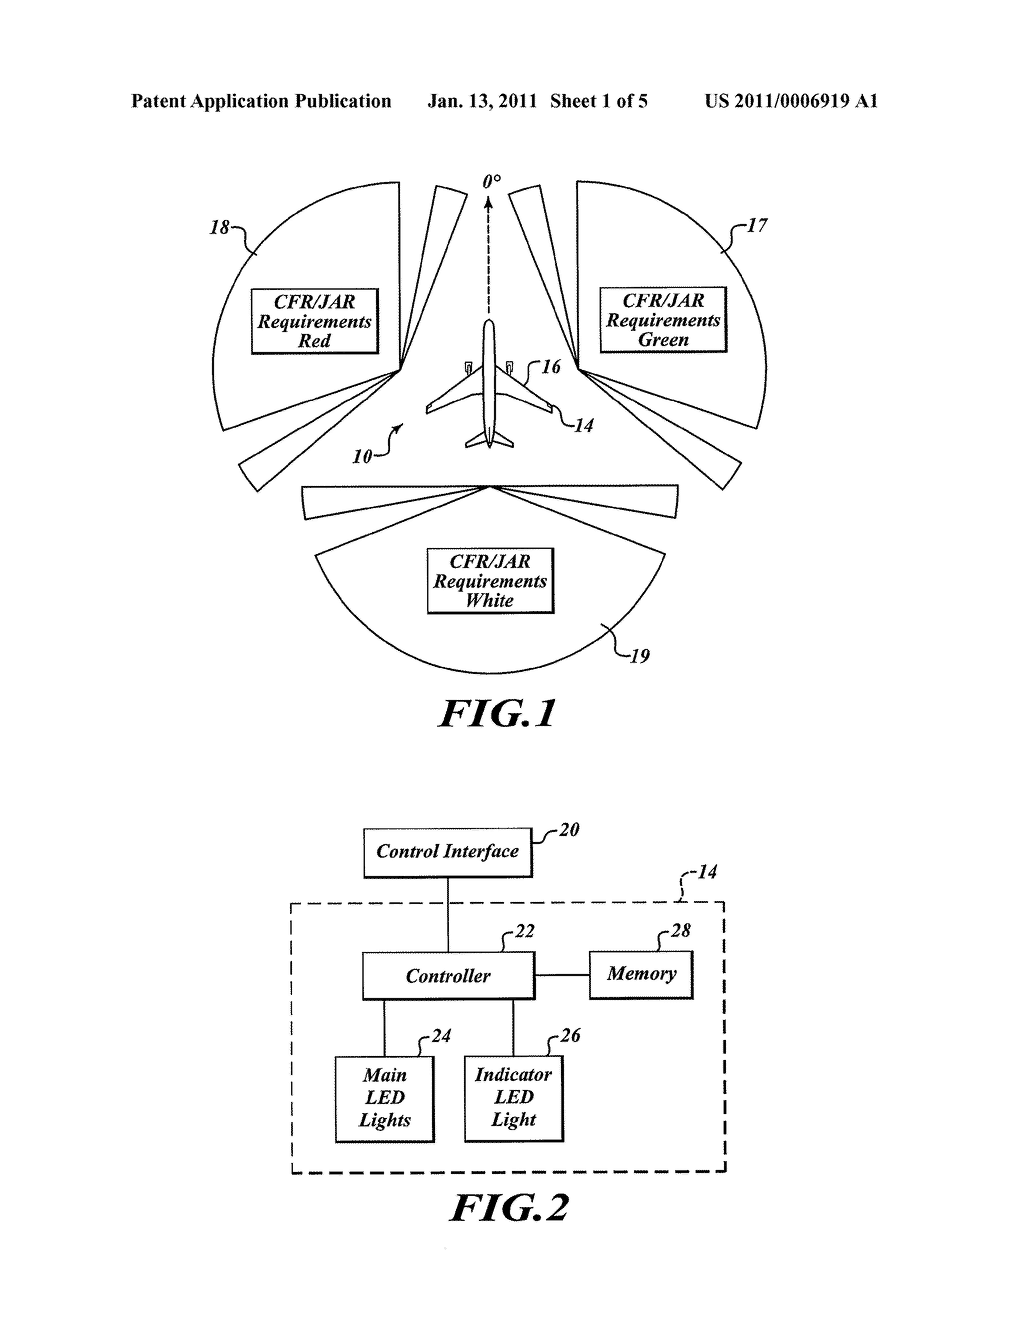 Navigation Light Schematic Diagrams Wiring Near End Of Life Indication For Emitting Diode Led Aircraft